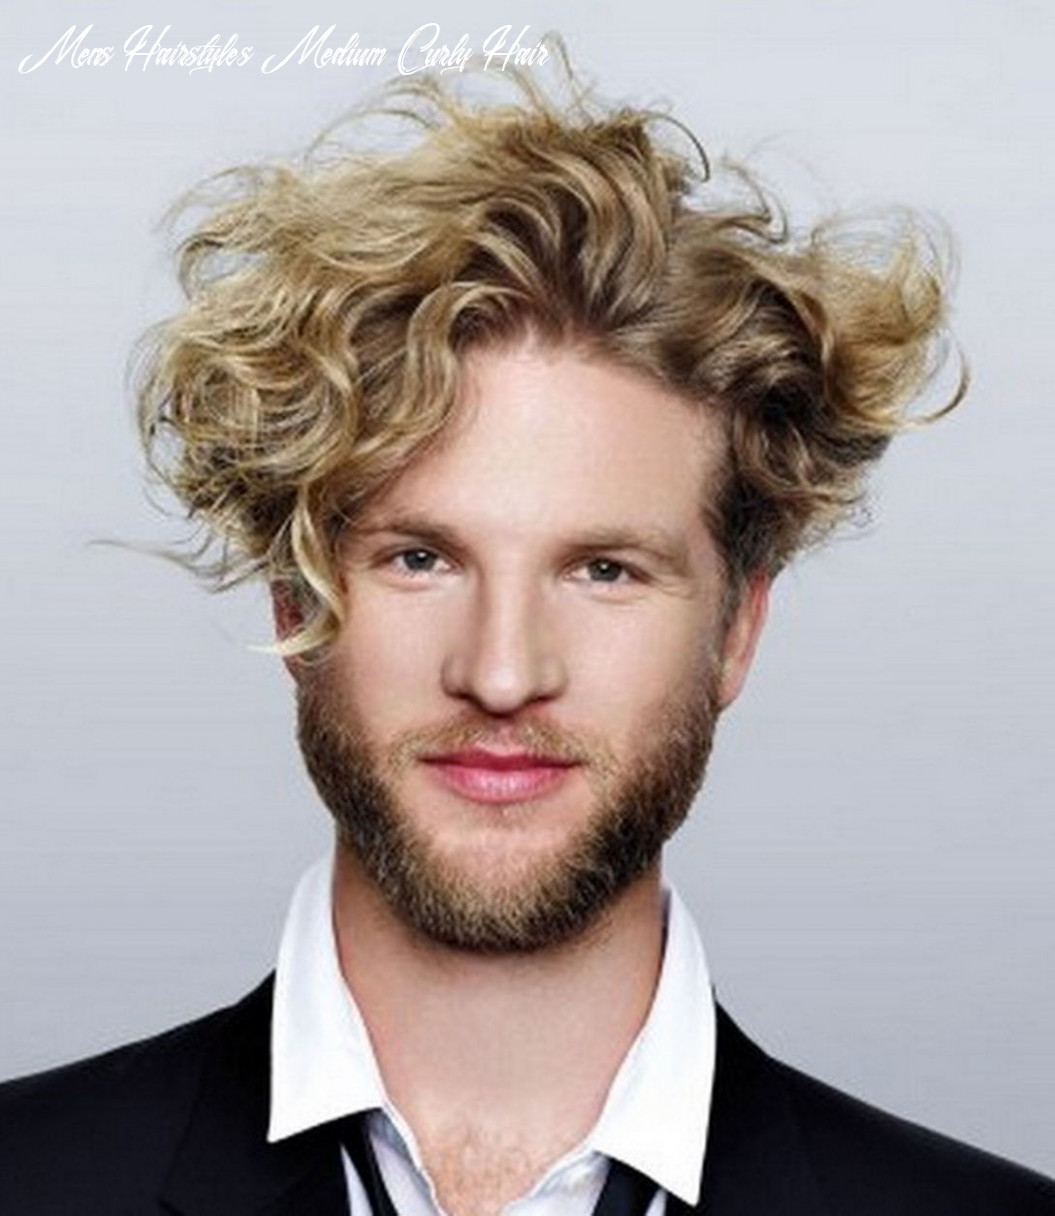 11 stylish curly hairstyle & haircuts for men [11 edition] mens hairstyles medium curly hair